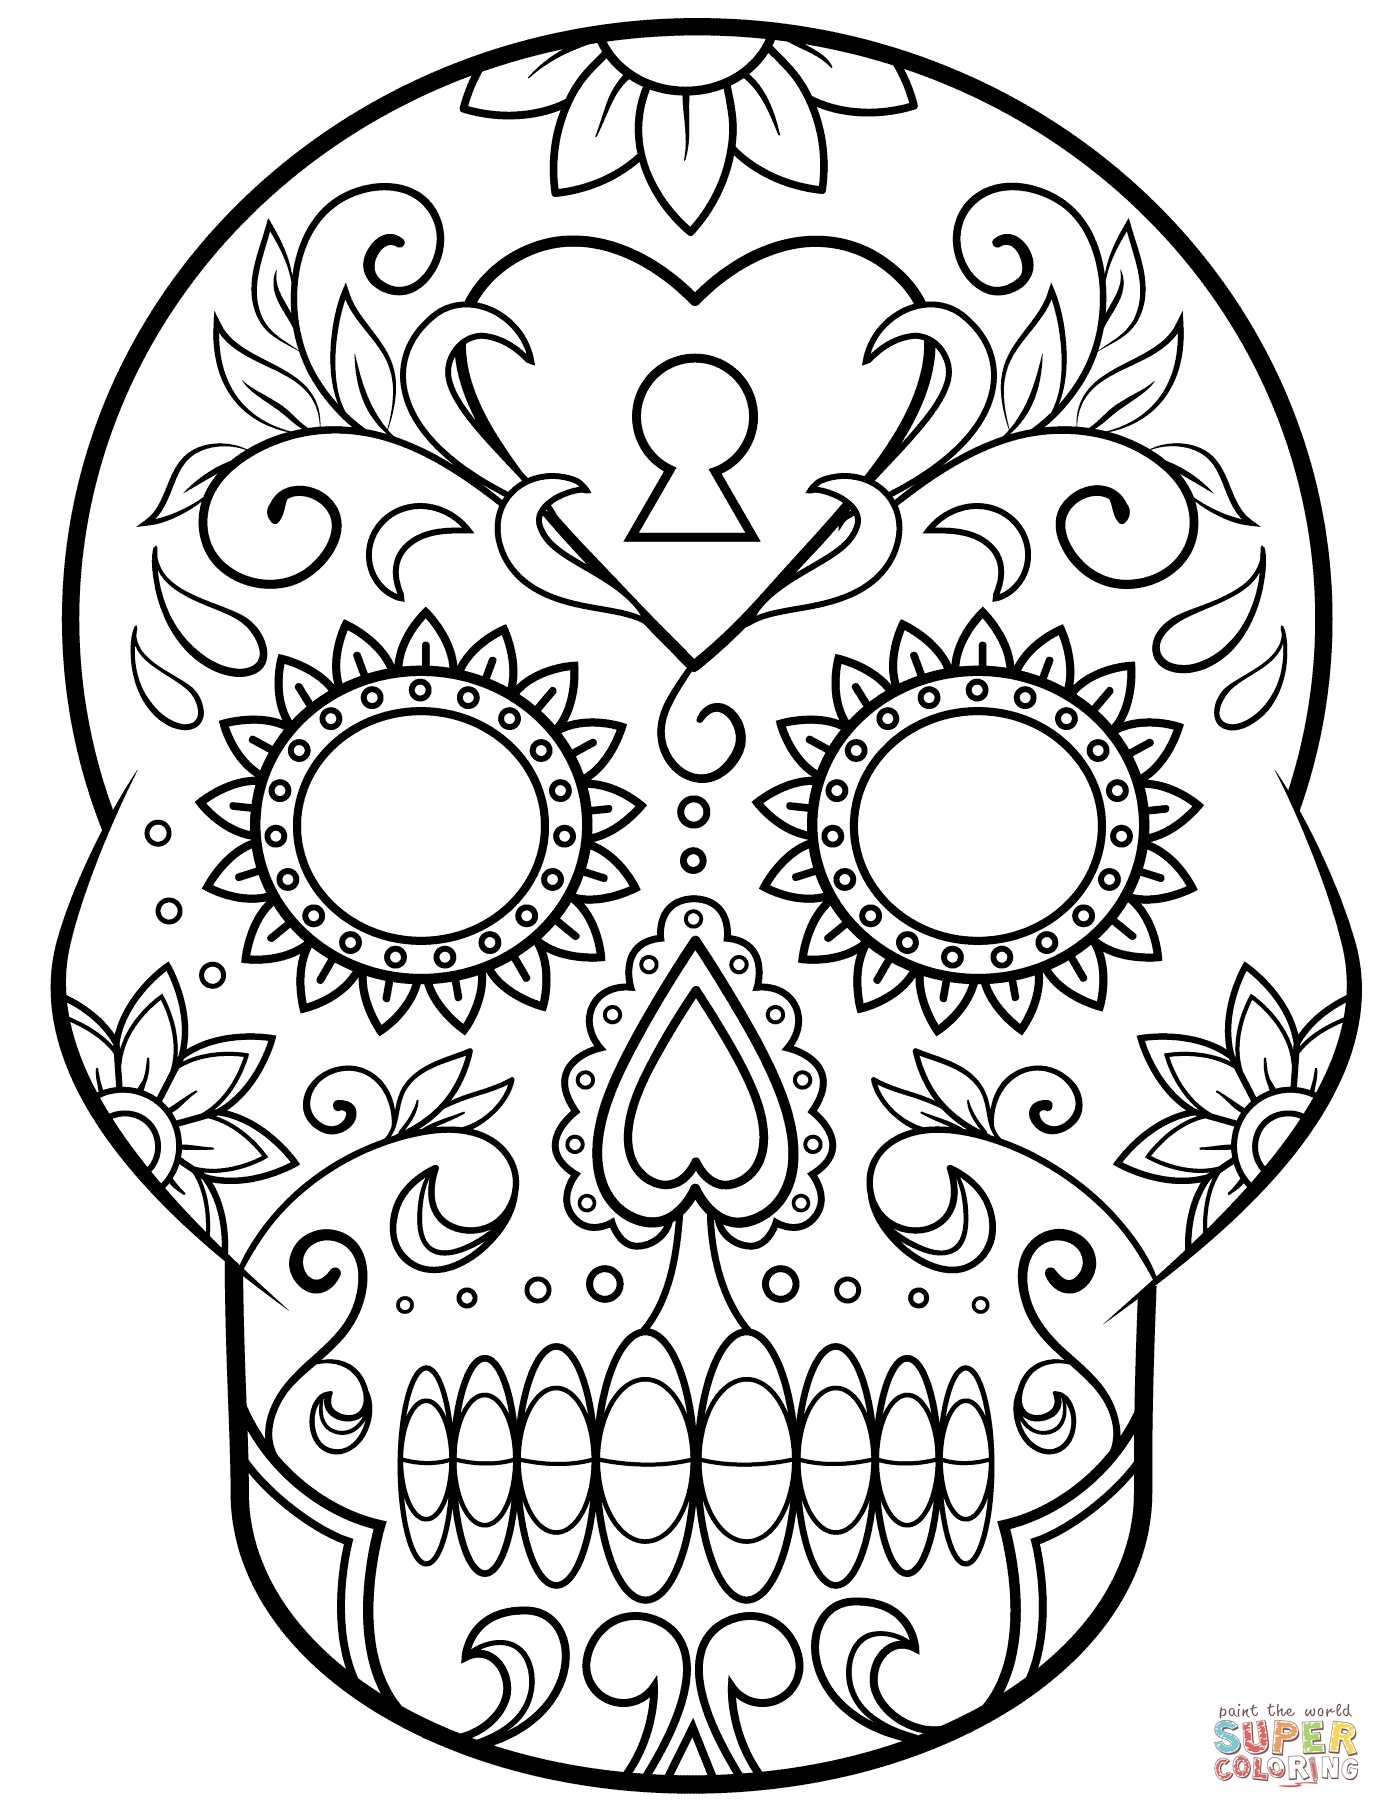 Day Of The Dead Sugar Skull Coloring Page | Free Printable Coloring - Free Printable Day Of The Dead Worksheets